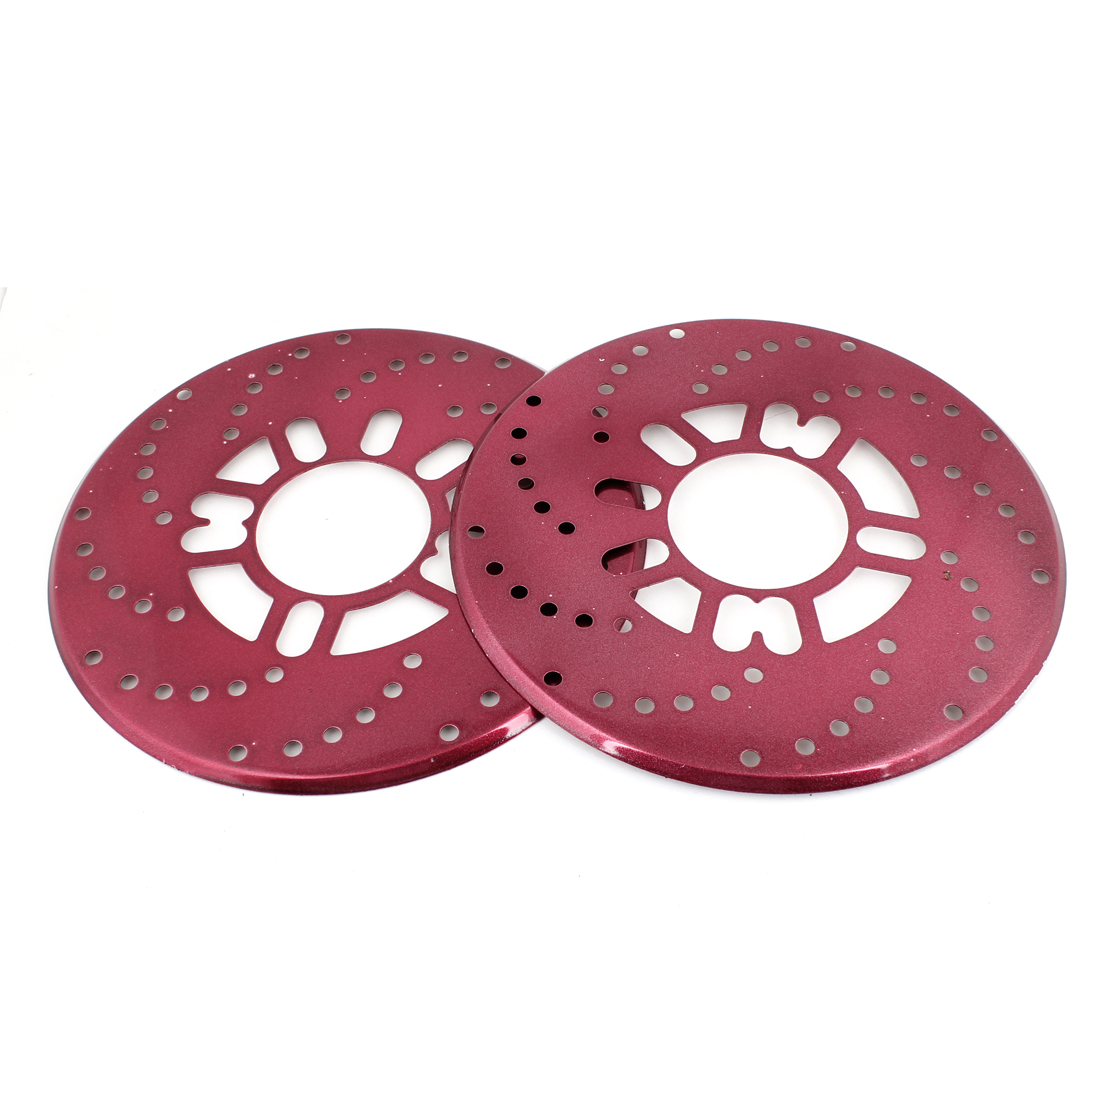 "Auto Car Wheel Decorative Burgundy Aluminium Disc Brake Racing Cover 10.2"" x 2"